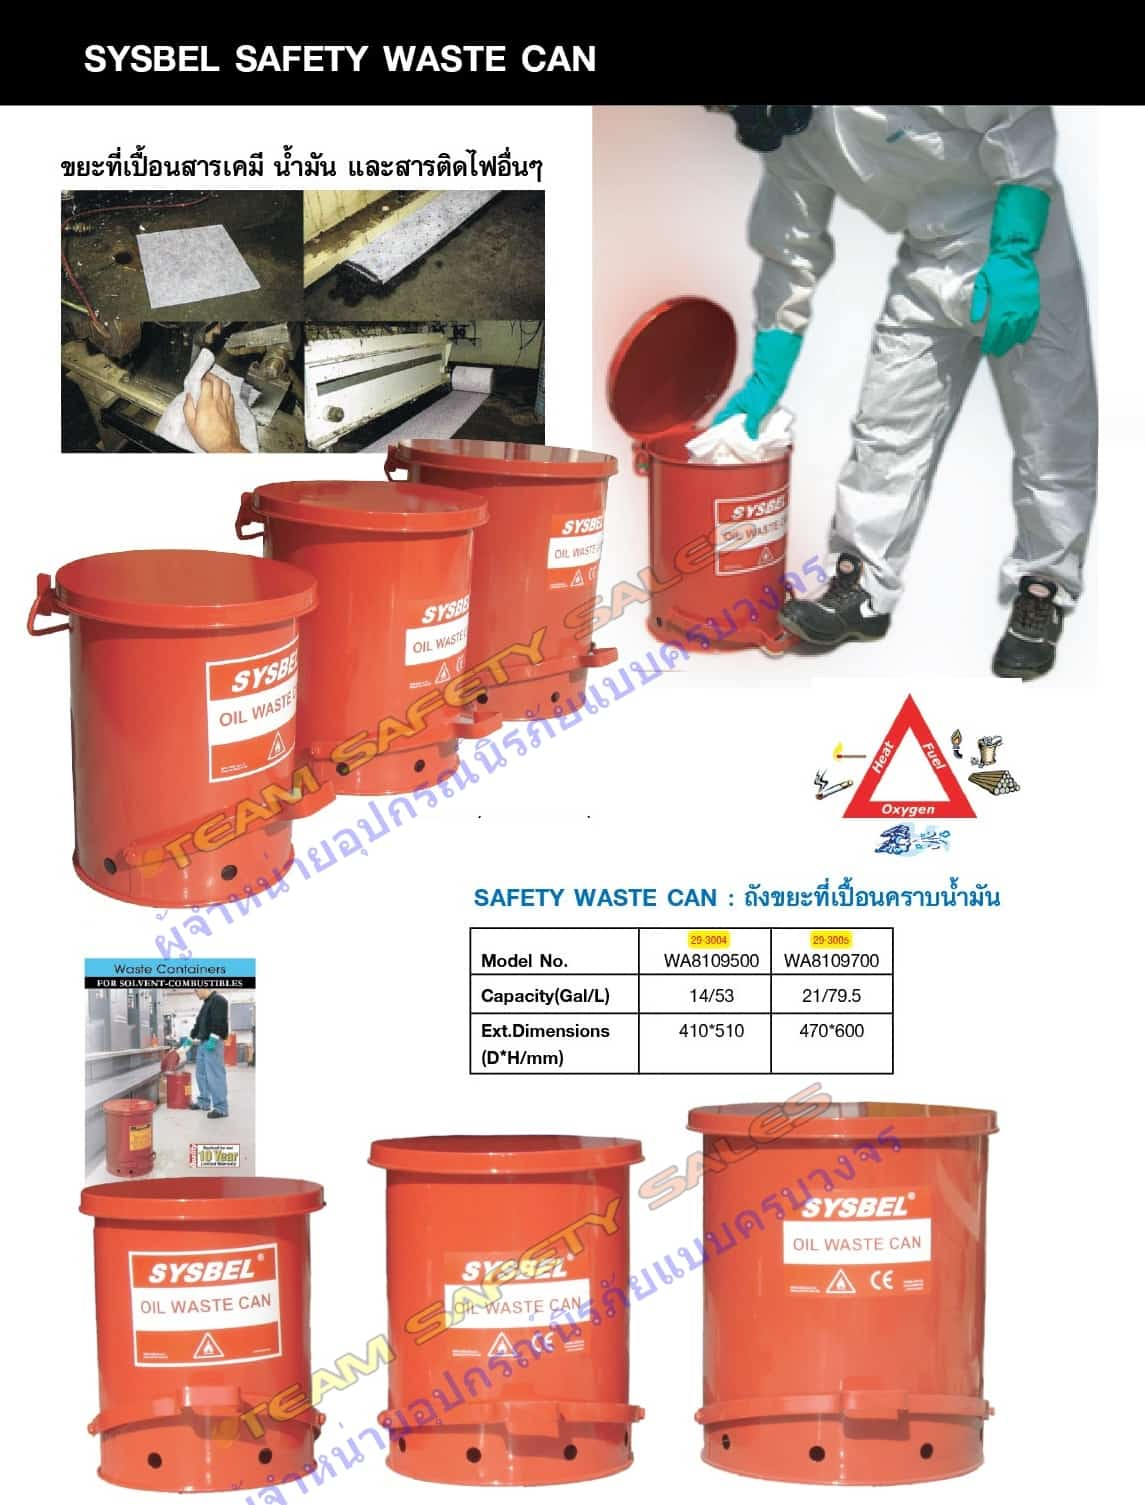 http://www.supersafetythailand.com/wp-content/uploads/2017/05/Sec29-p1-2-safety-waste-can.jpg